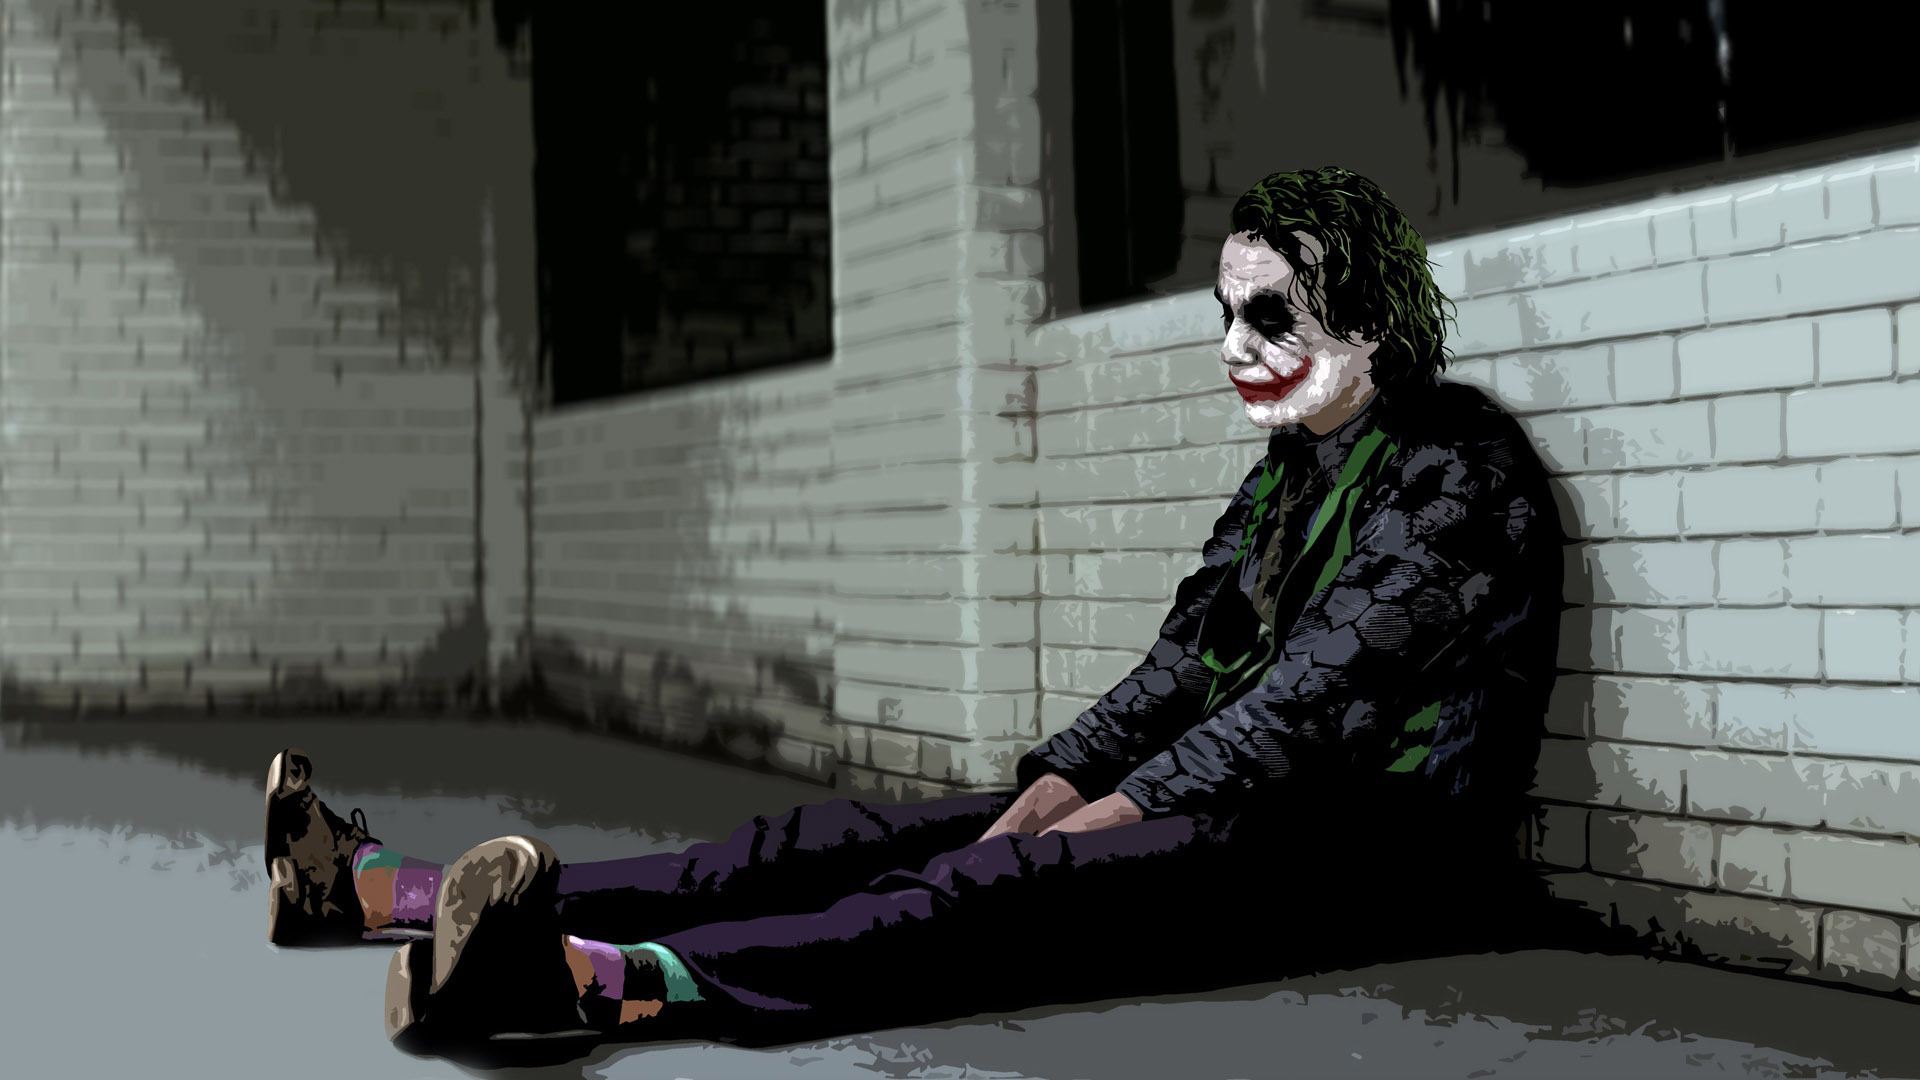 The Joker   The Dark Knight wallpaper 11288 1920x1080